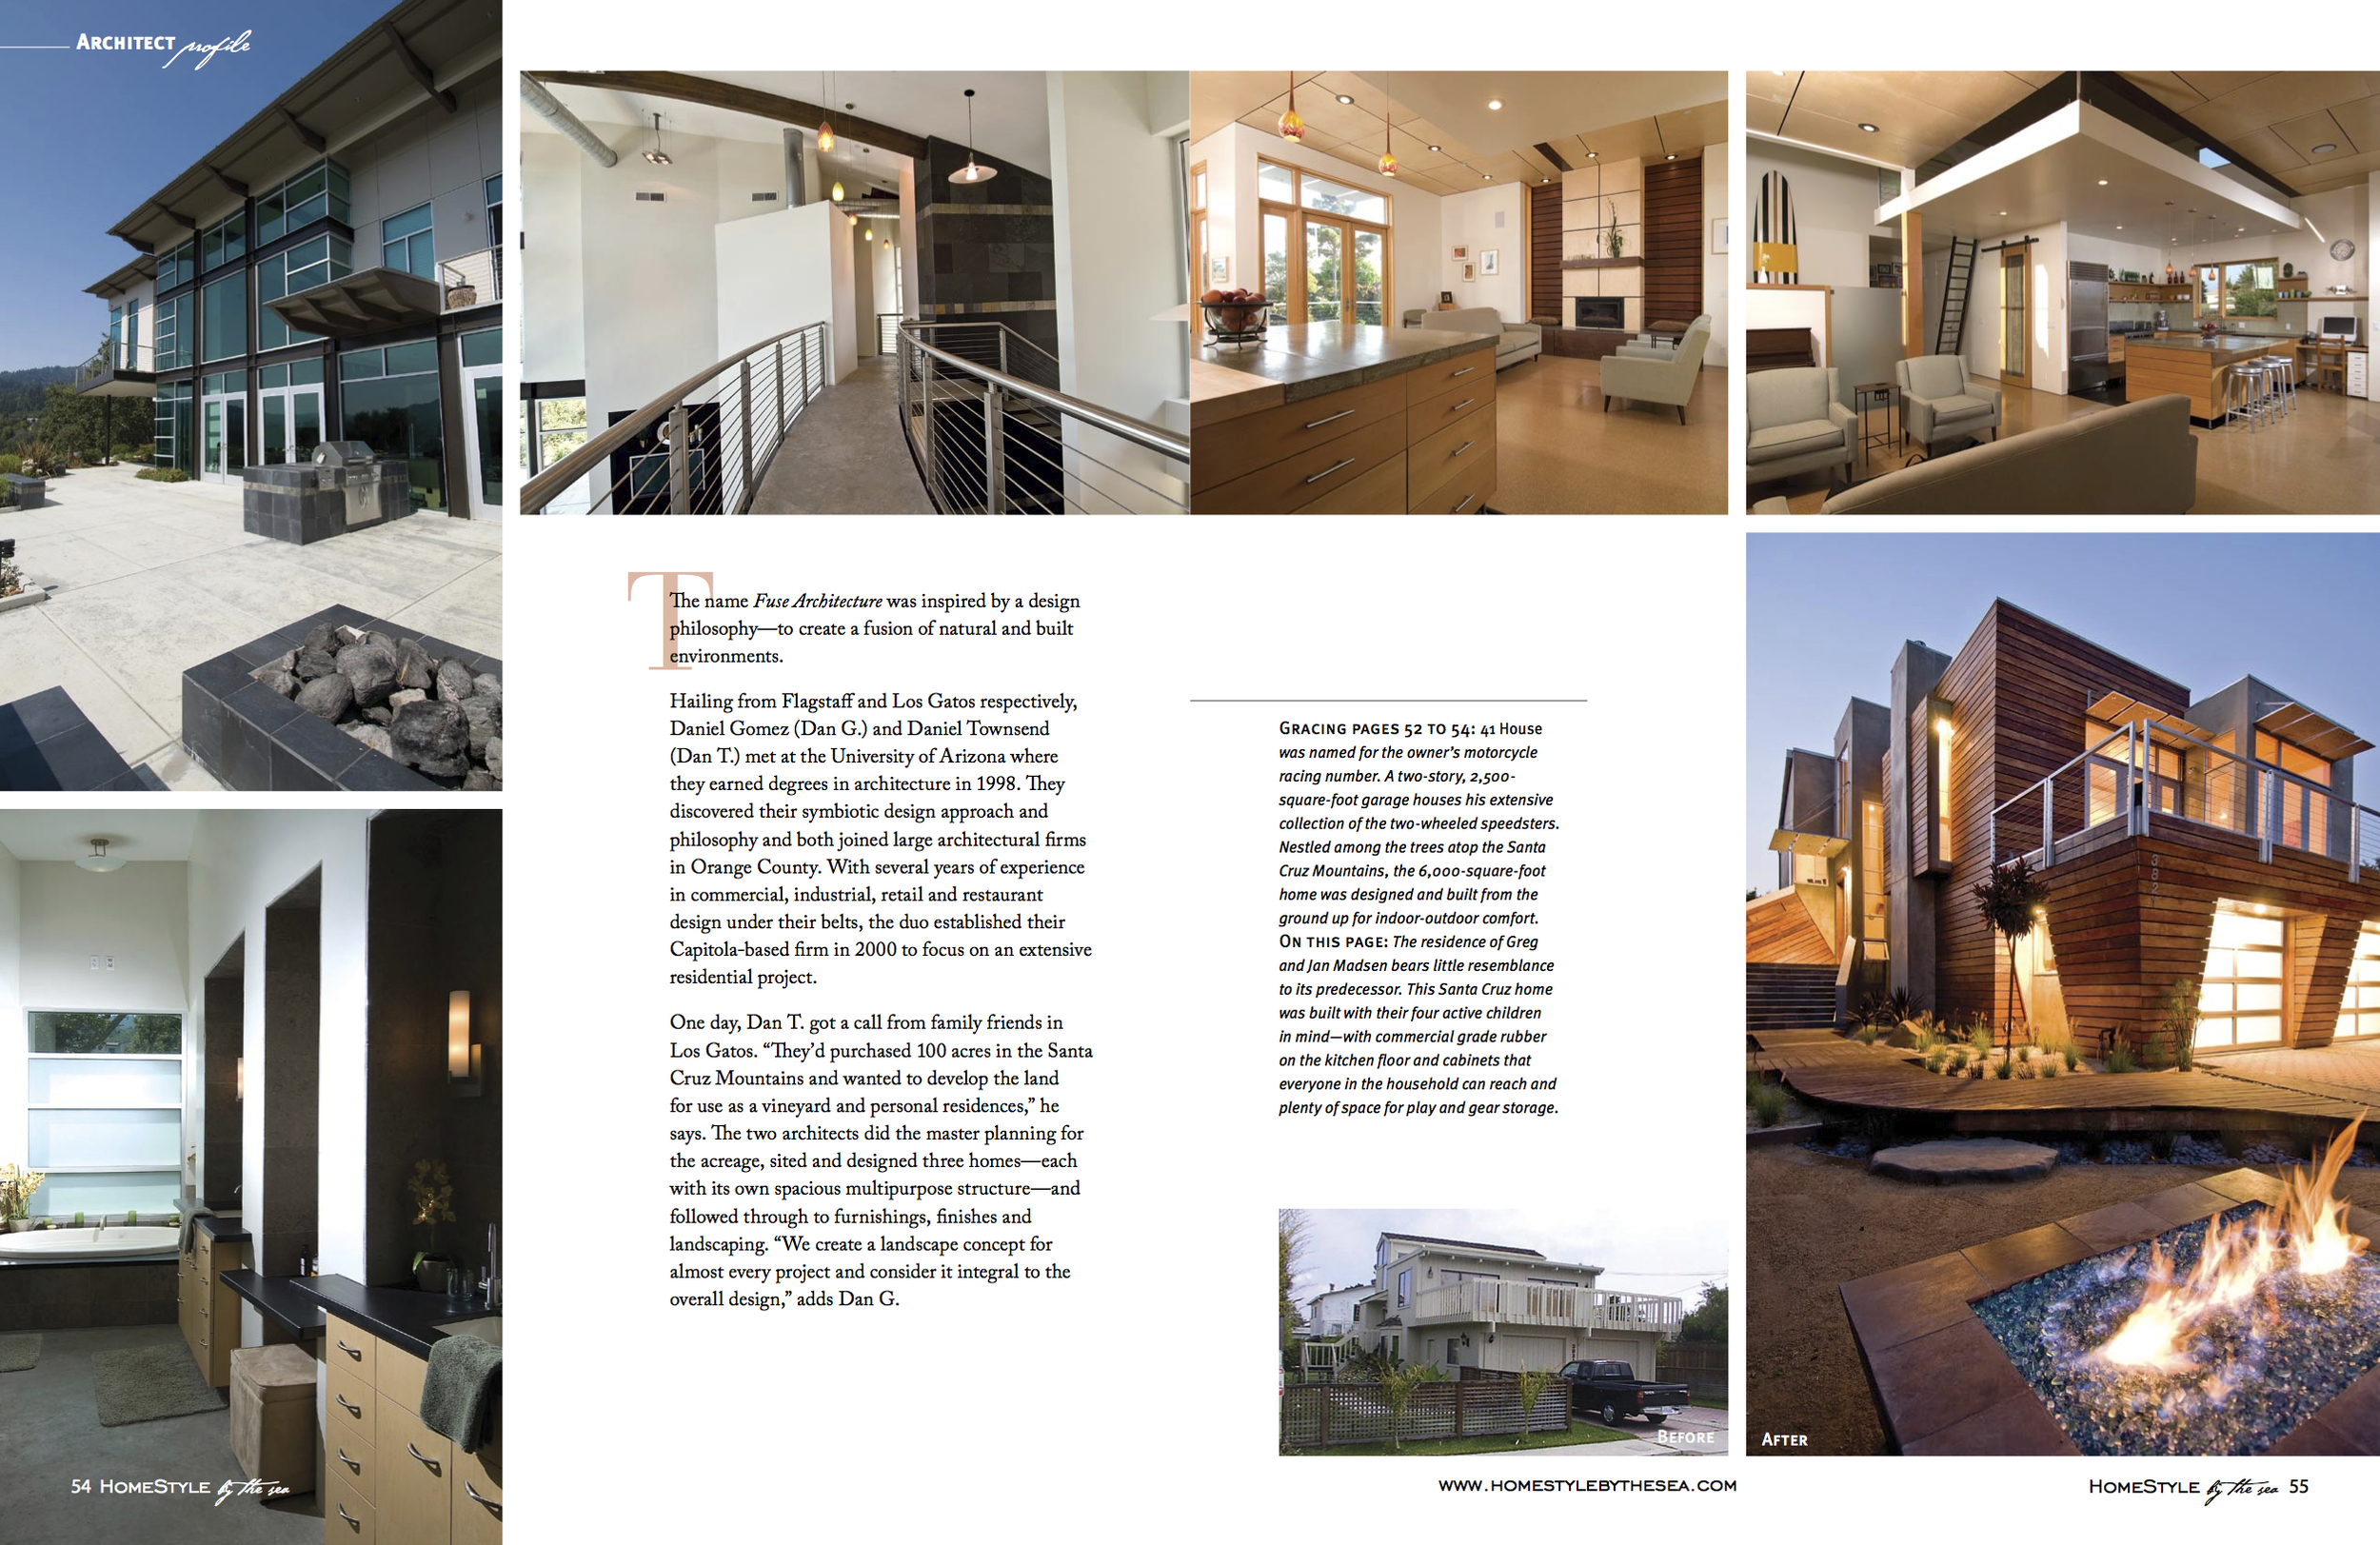 Fuse Architecture Press - Builder + Architect Magazine inside spread 1